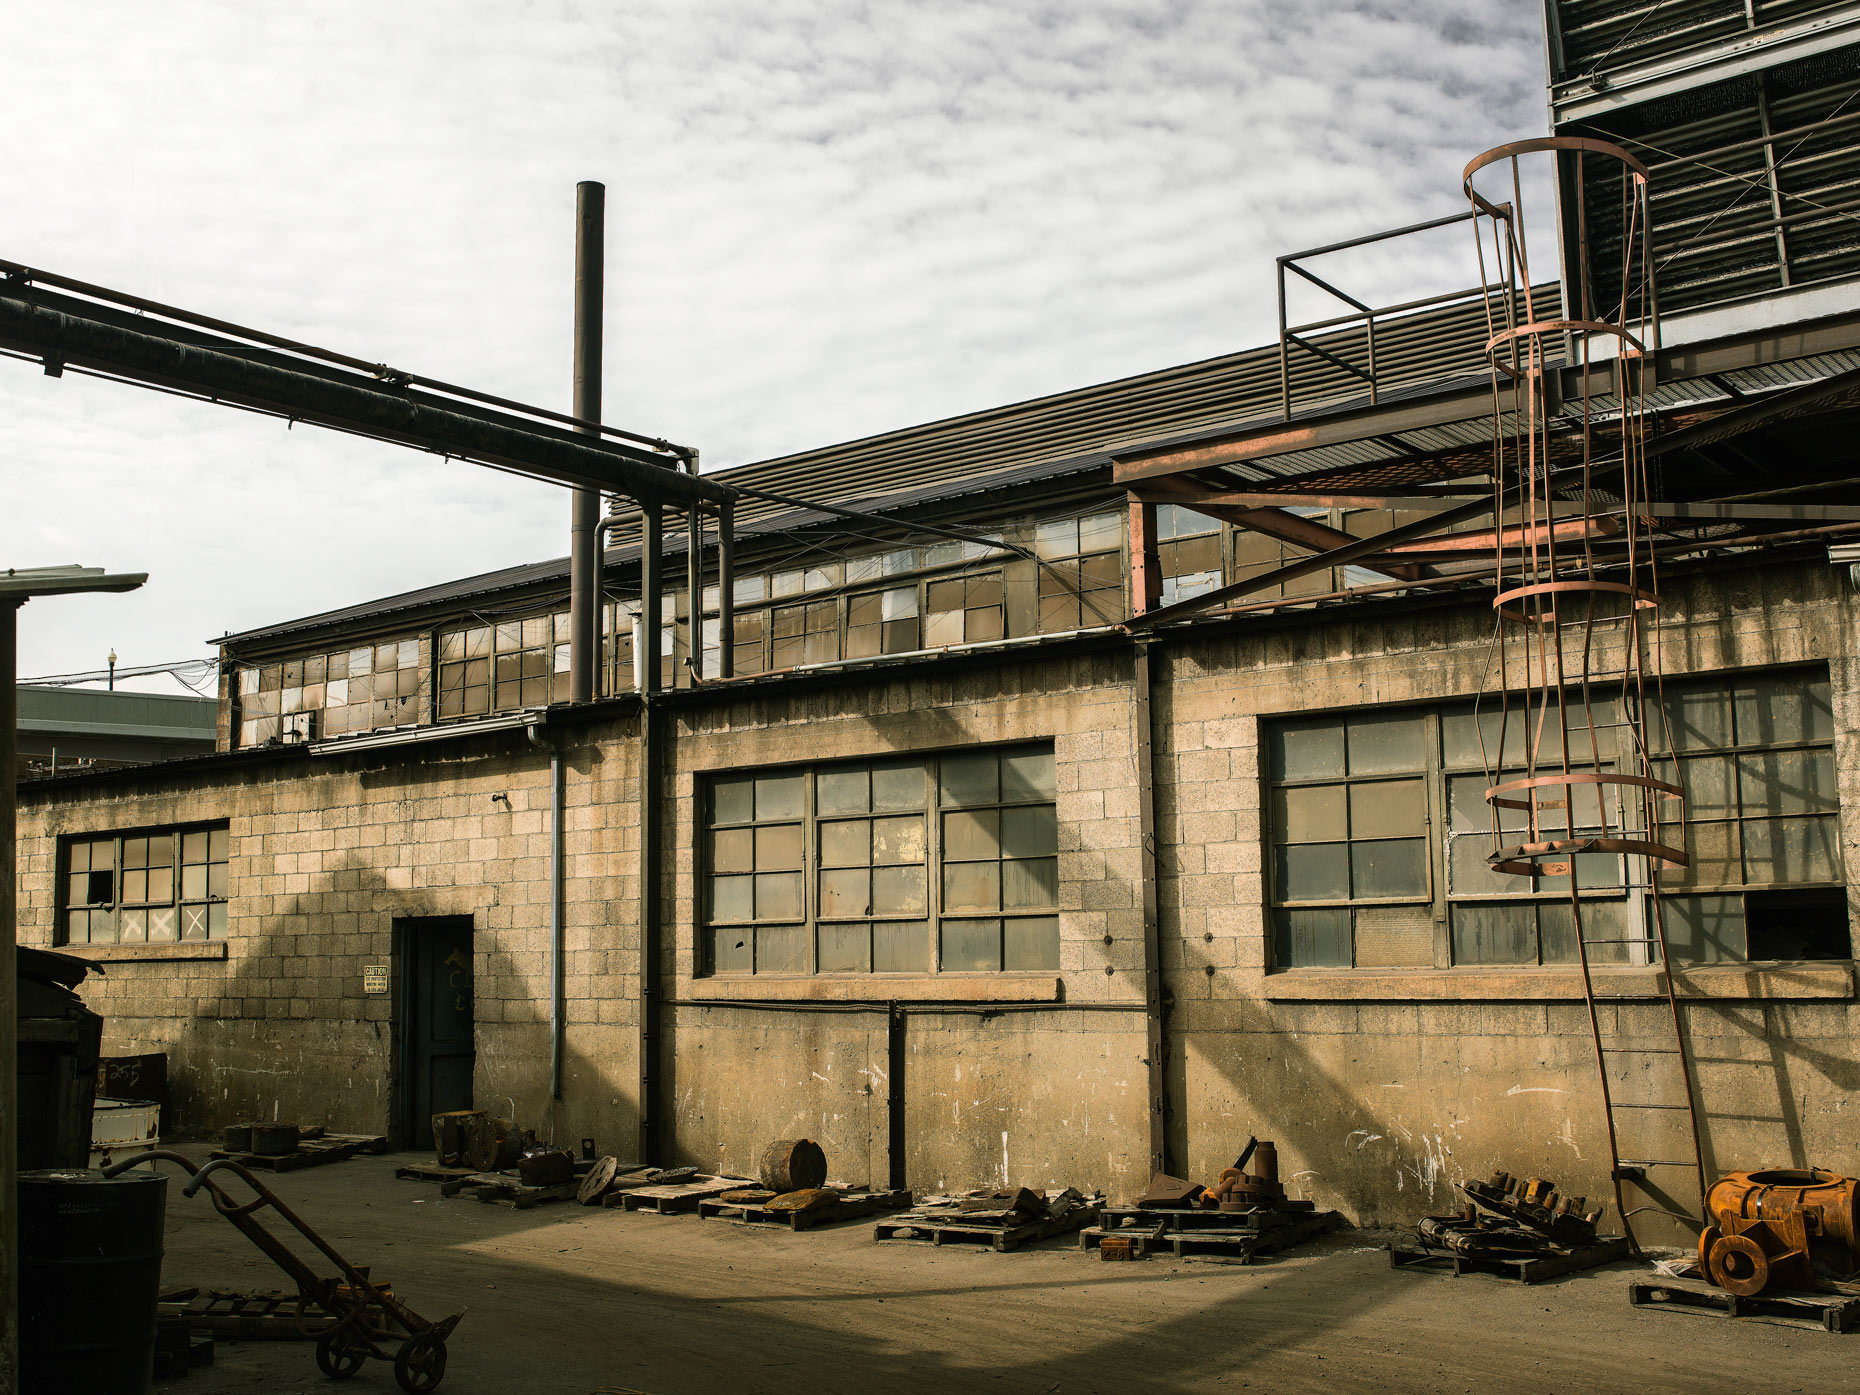 Projects-Editorial-Photography-Derek-Israelsen-009-Foundry_Pipe.jpg